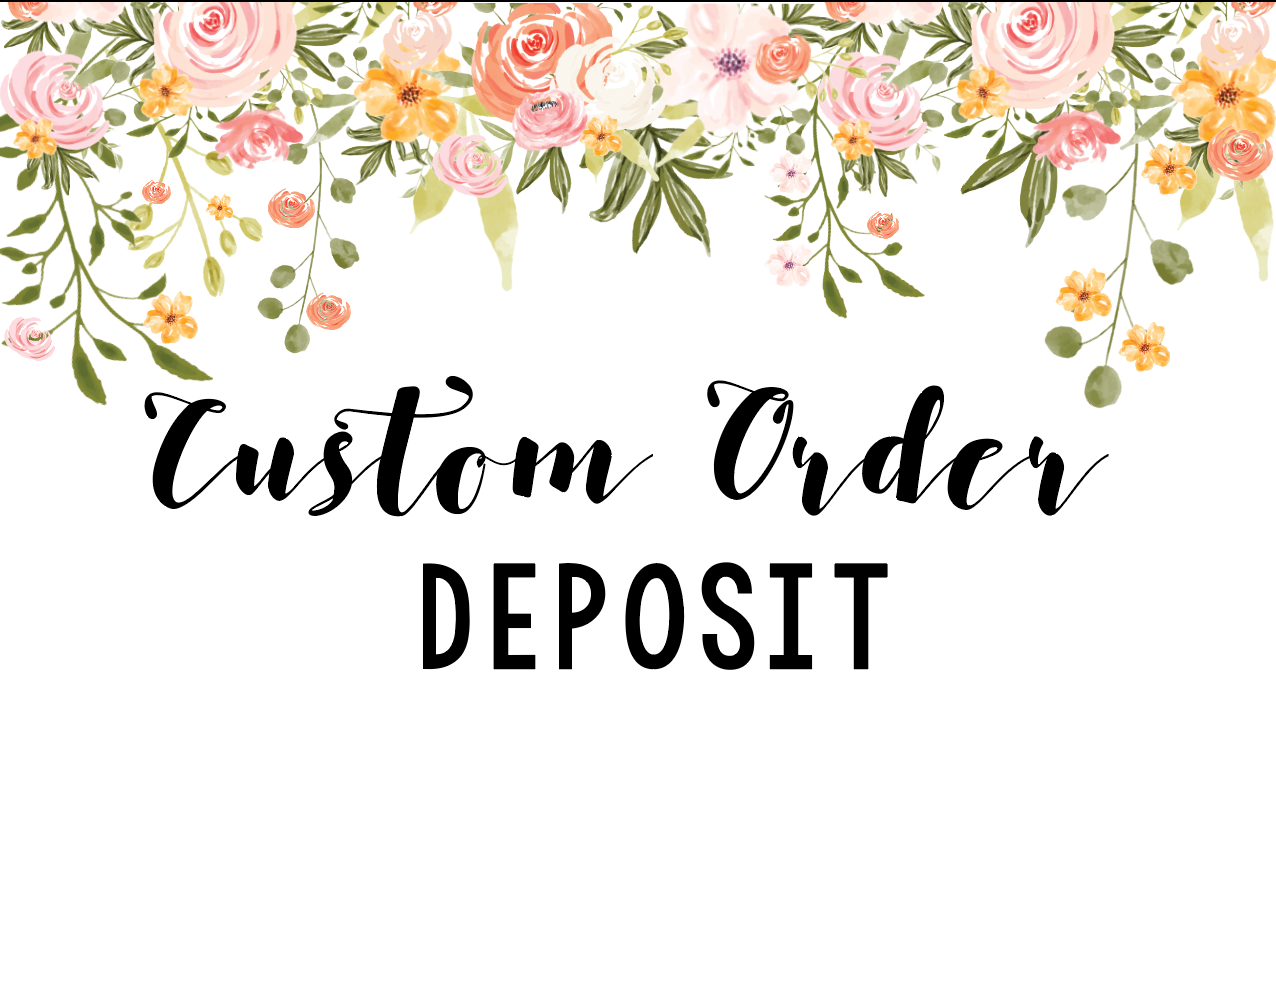 Custom Order Deposit // PURCHASE THIS LISTING IF YOU'D LIKE TO DESIGN SOMETHING OF YOUR OWN